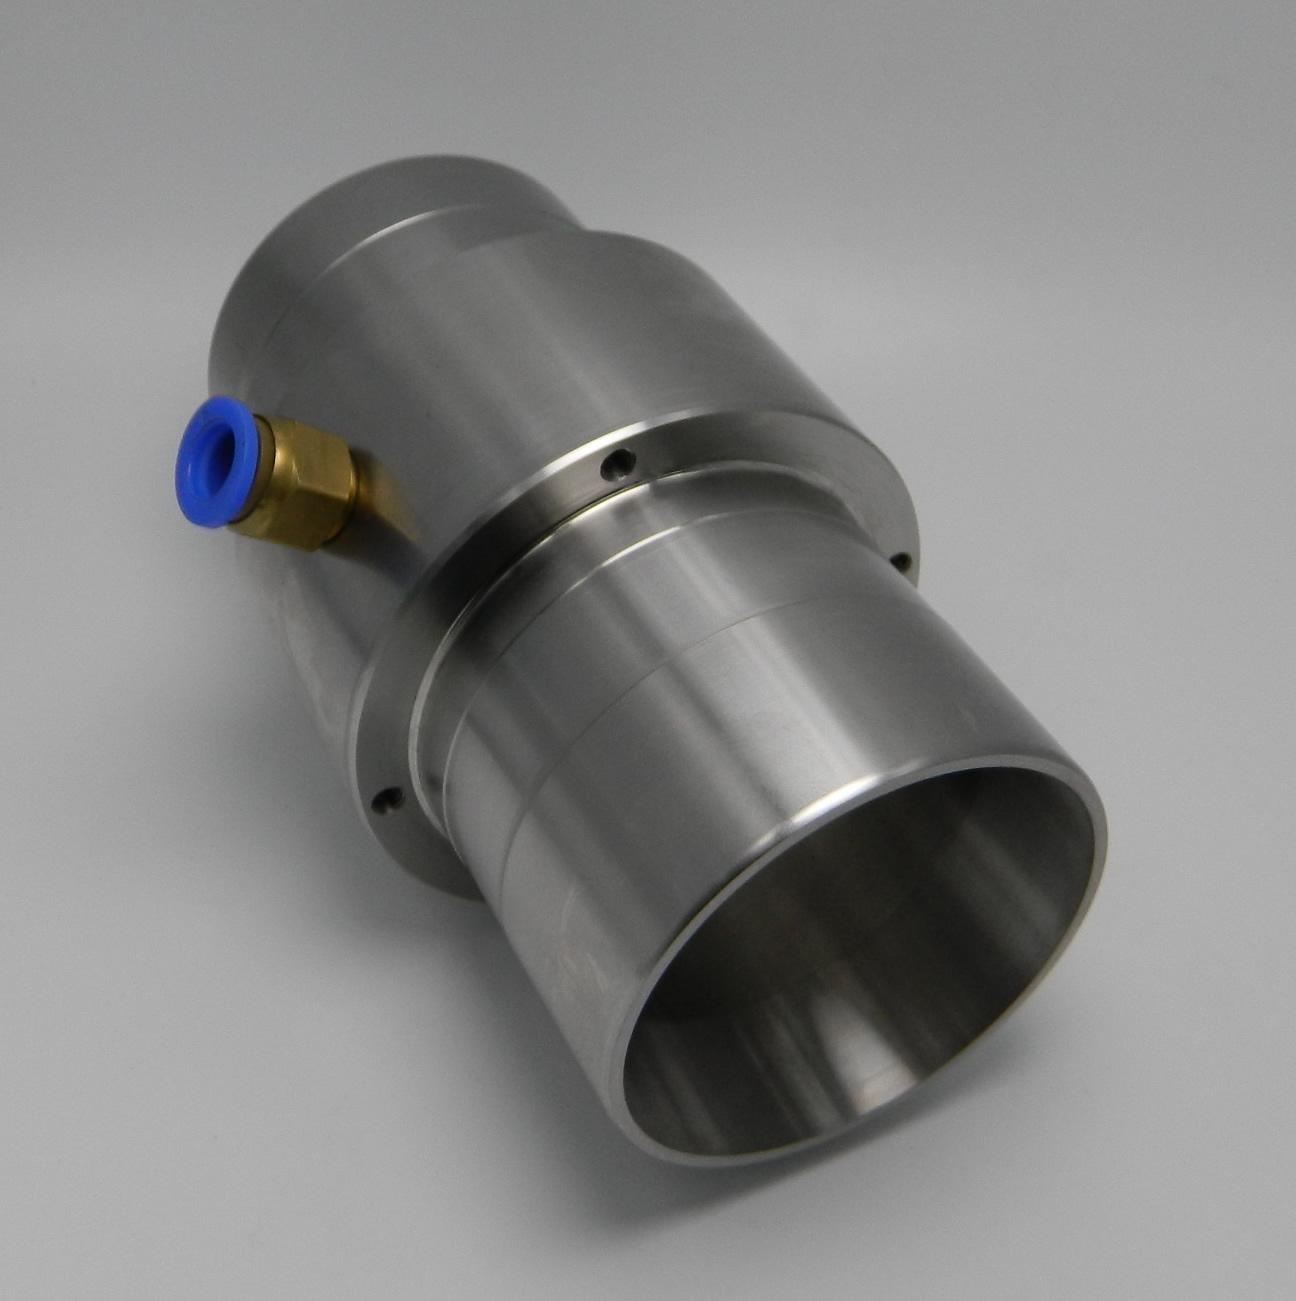 Pneumatic Conveyor / Air Amplifier 3 Inch 304 Stainless Steel Interface 75mm Through Hole 66mm